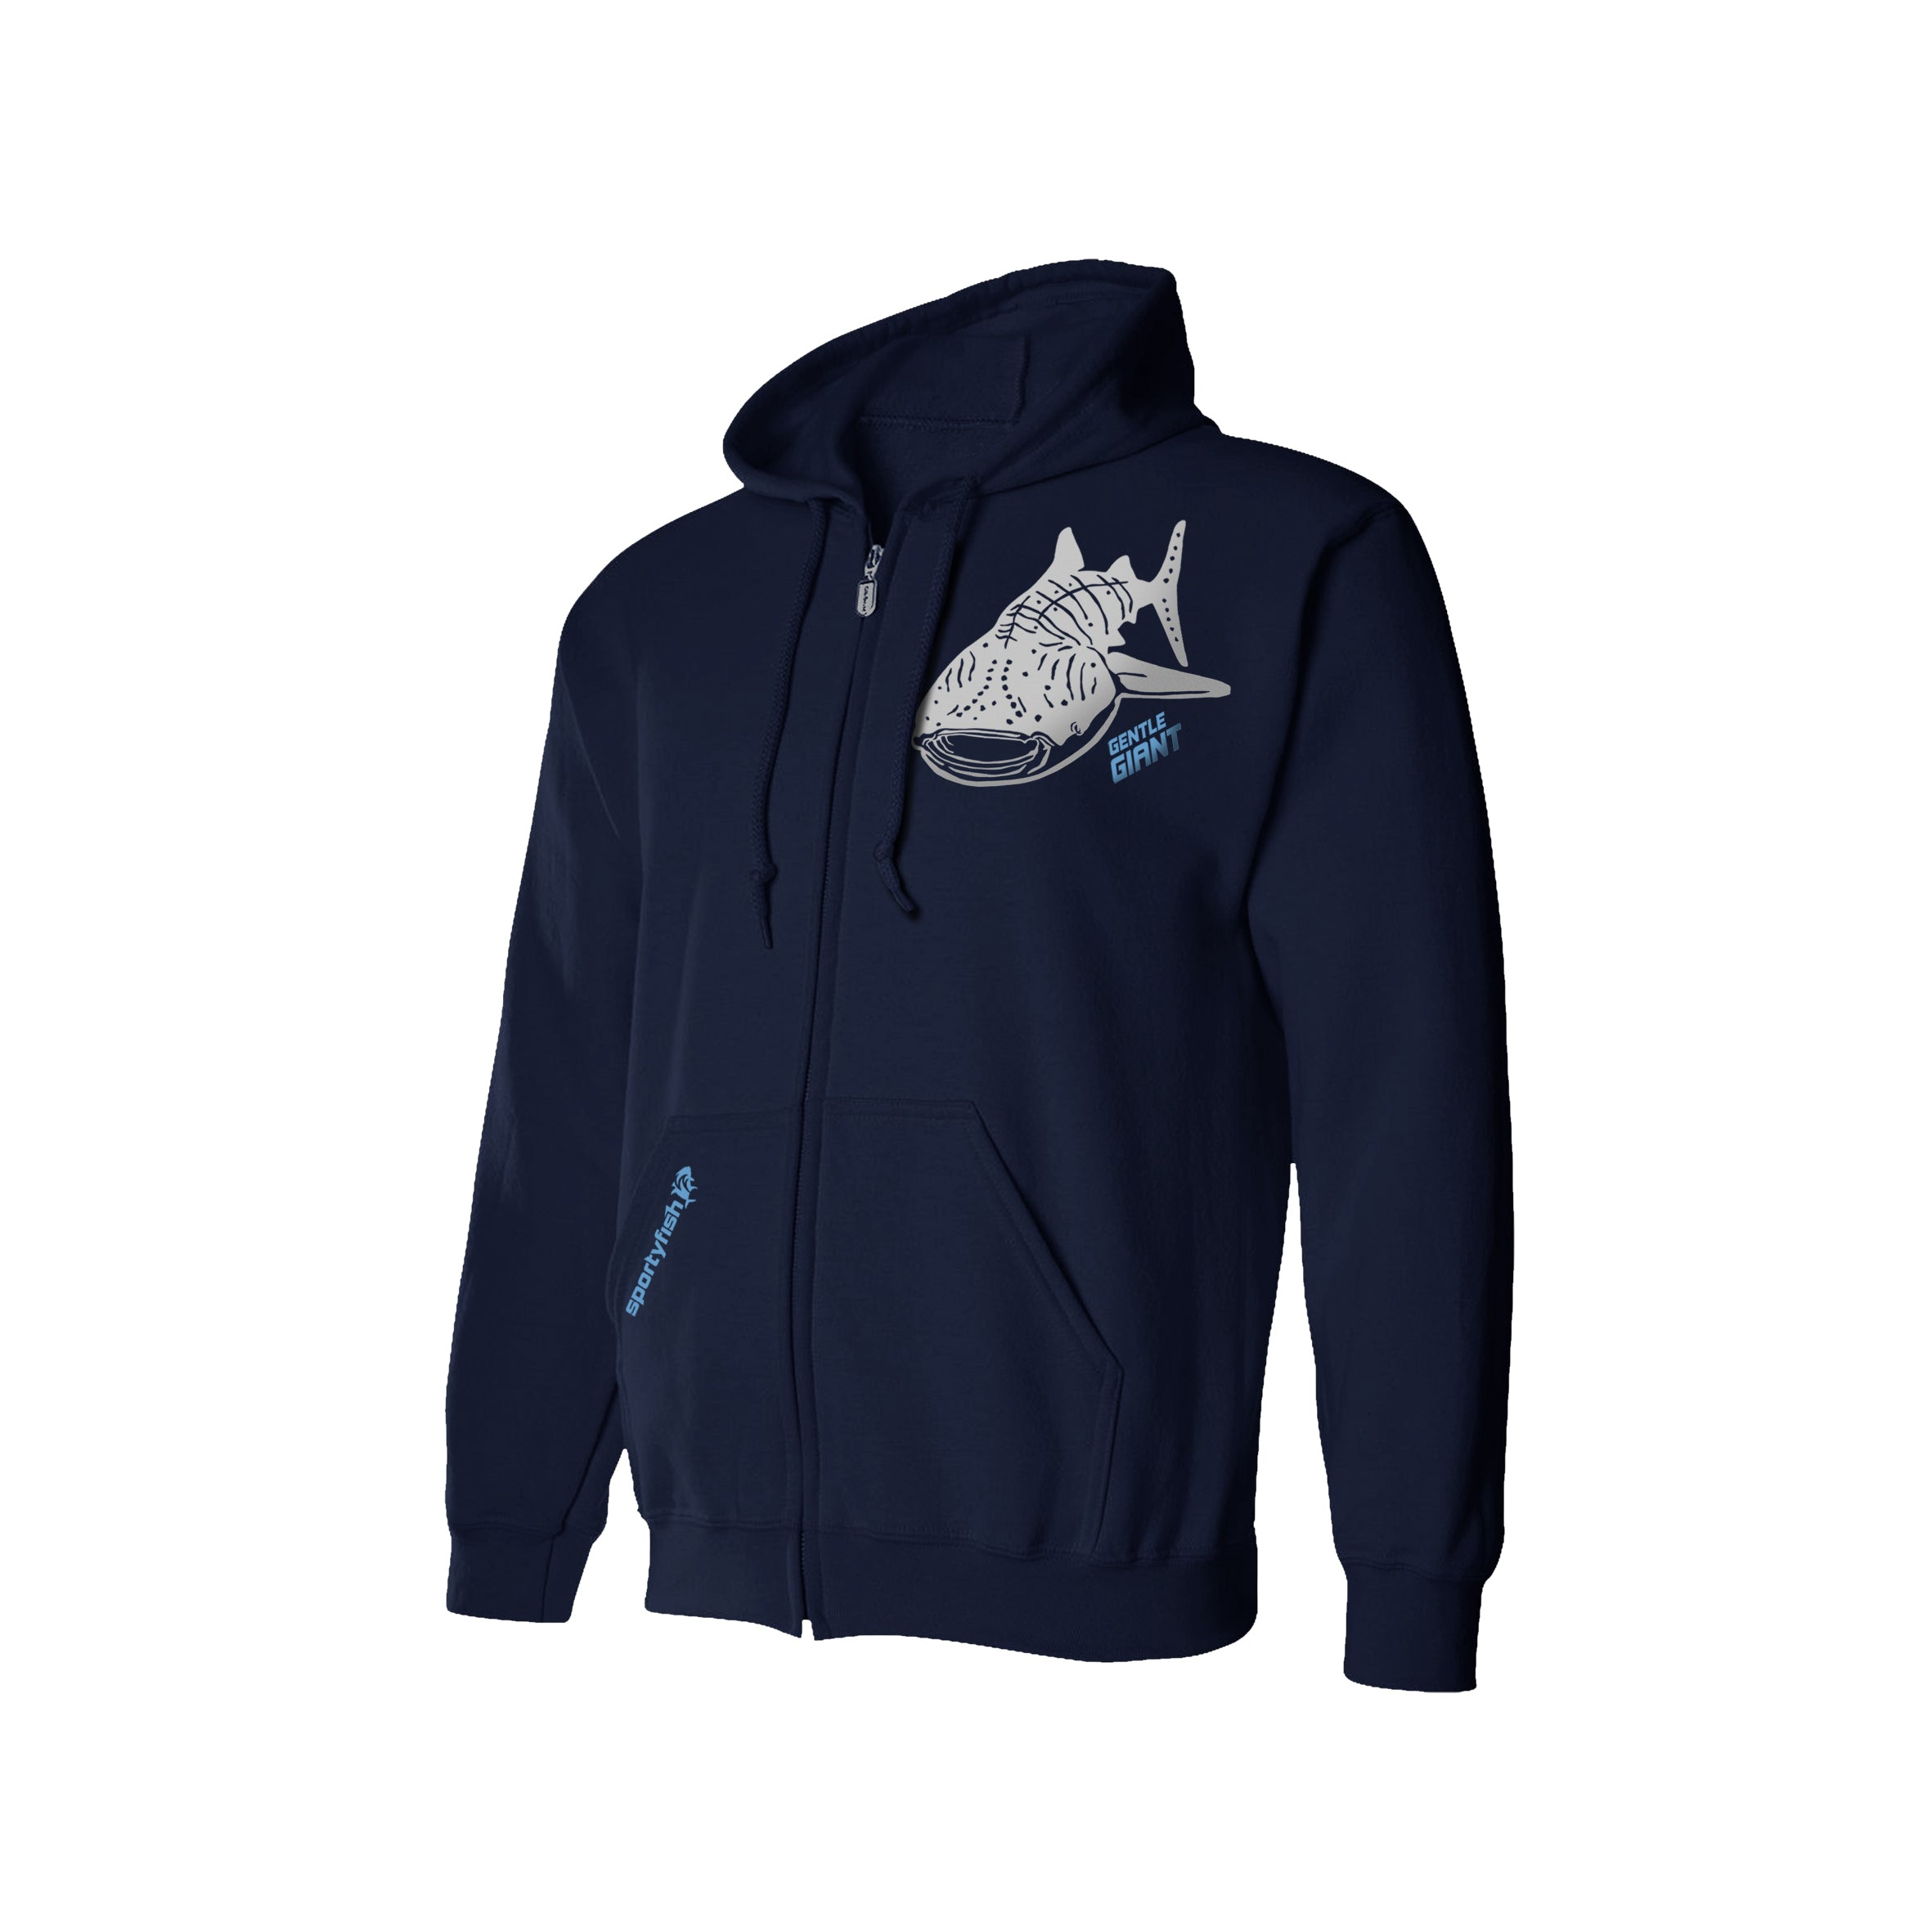 Shark Crusader Series Hoodie - Whale Shark